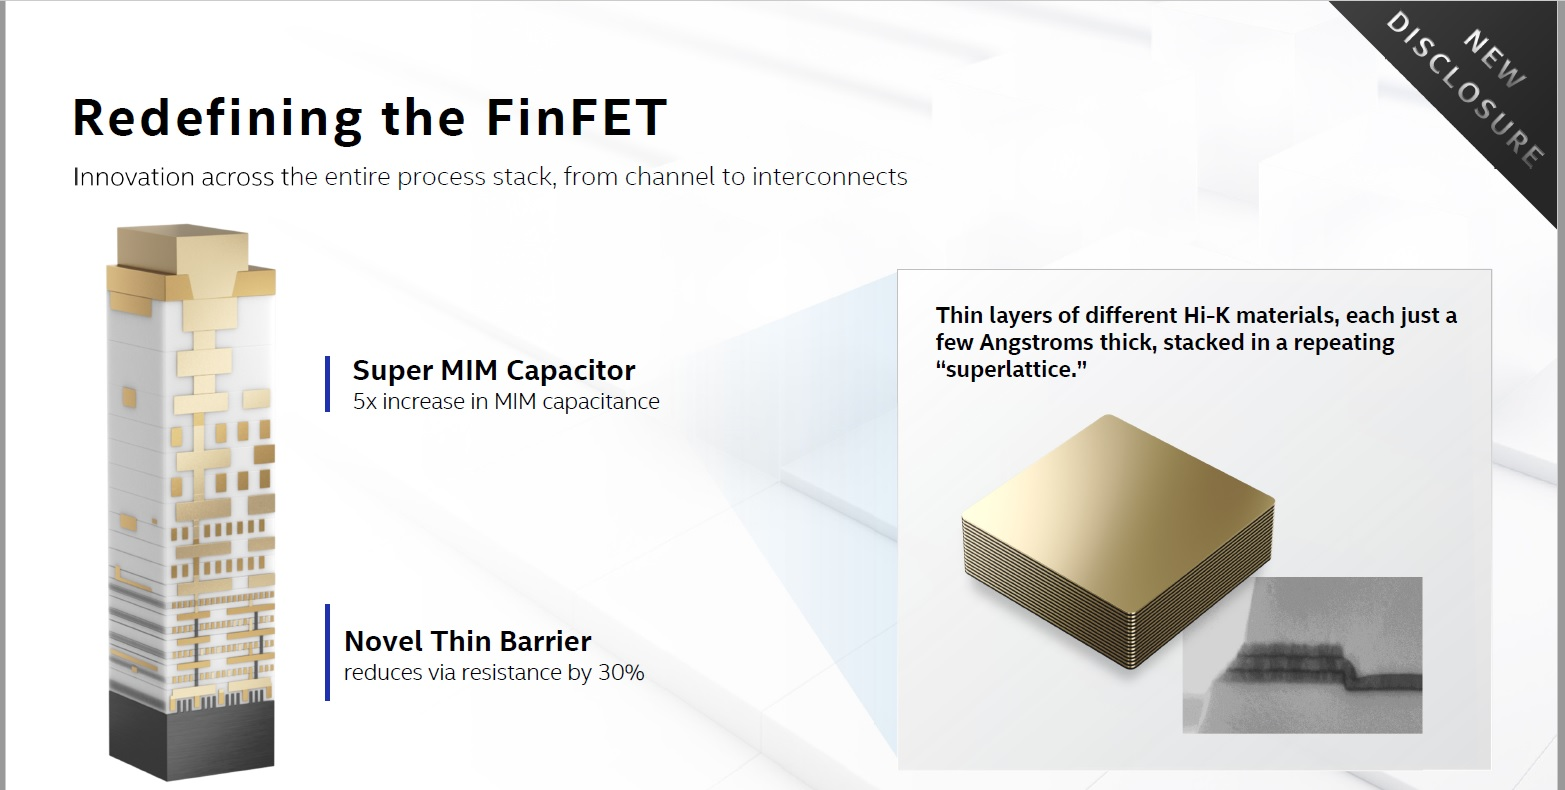 Redefining the FinFET Intel